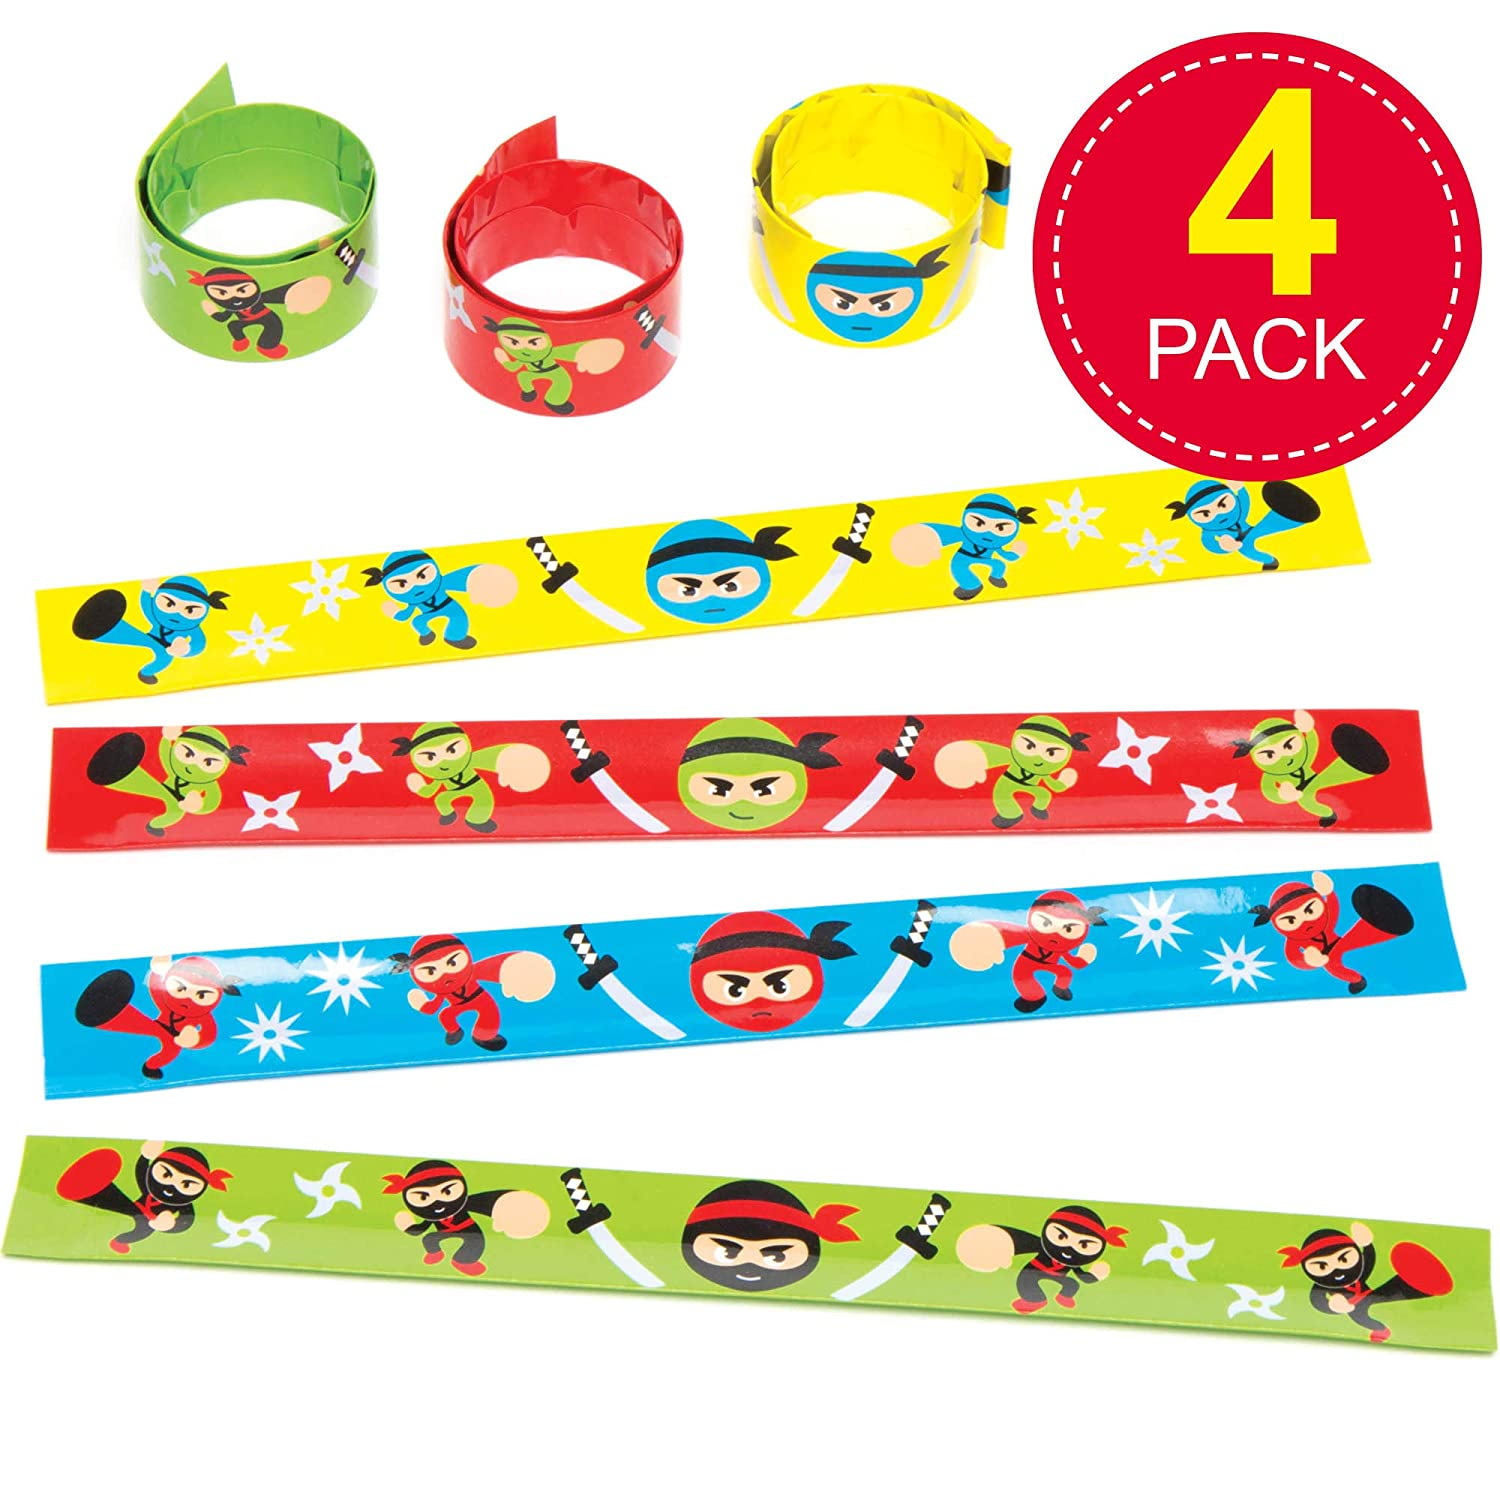 Baker Ross Ltd Ninja Snap-on Bracelets for Children to Wear - Perfect Toy Party Bag Stuffer Loot Gifts for Kids (Pack of 4)